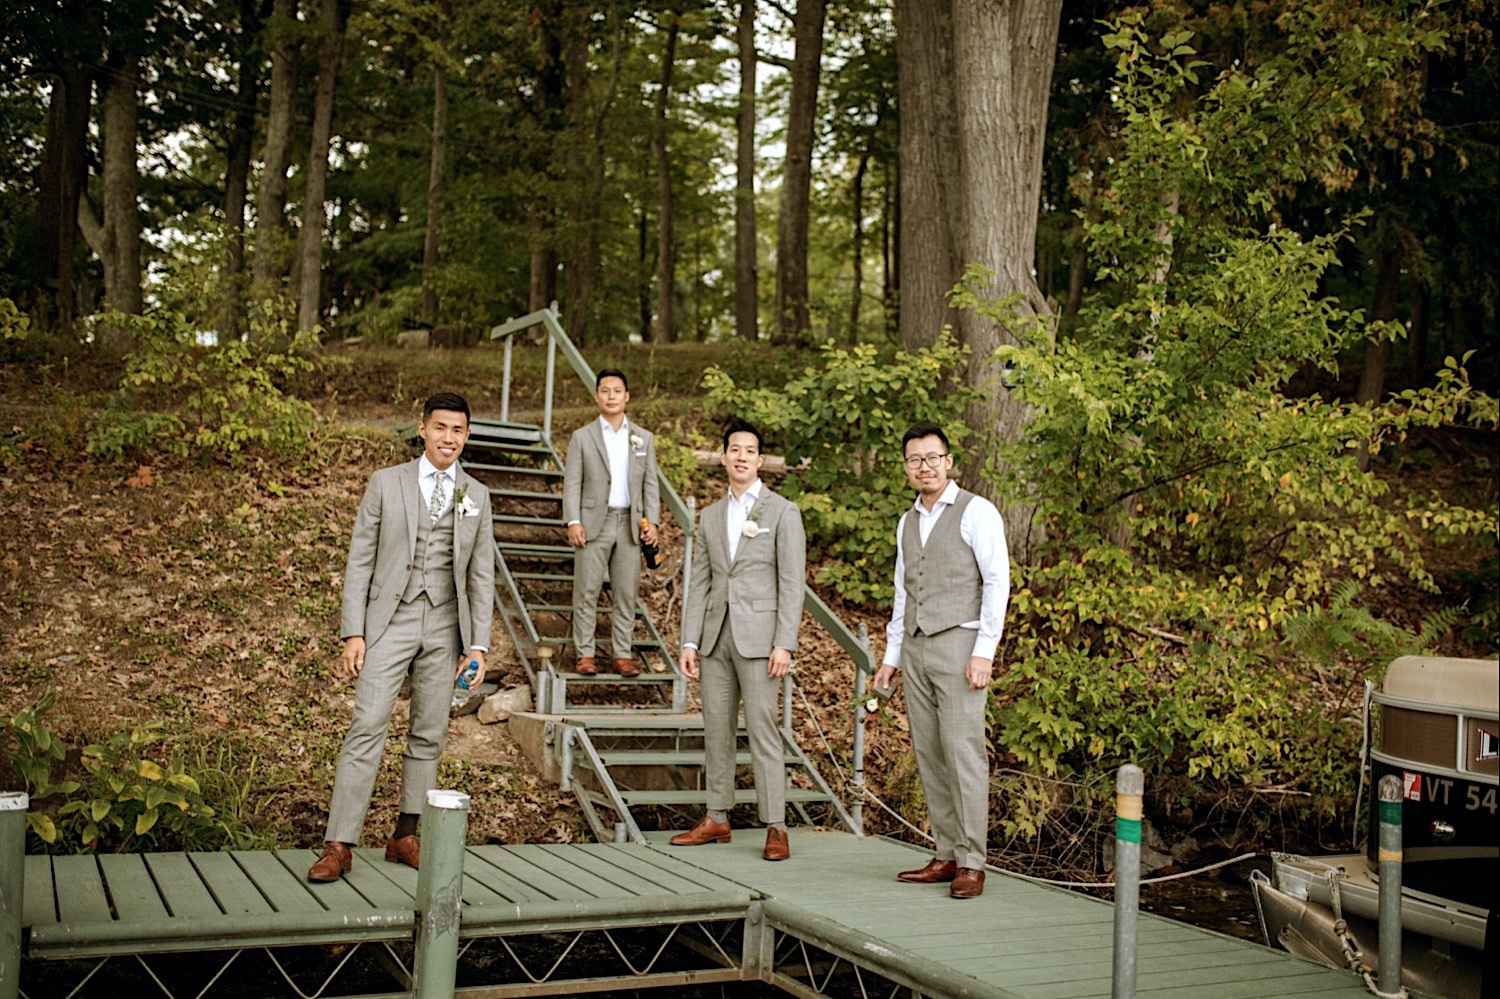 Bomoseen Lodge Wedding - Groomsmen wait for the rest of the wedding party on the dock on Neshobe Island